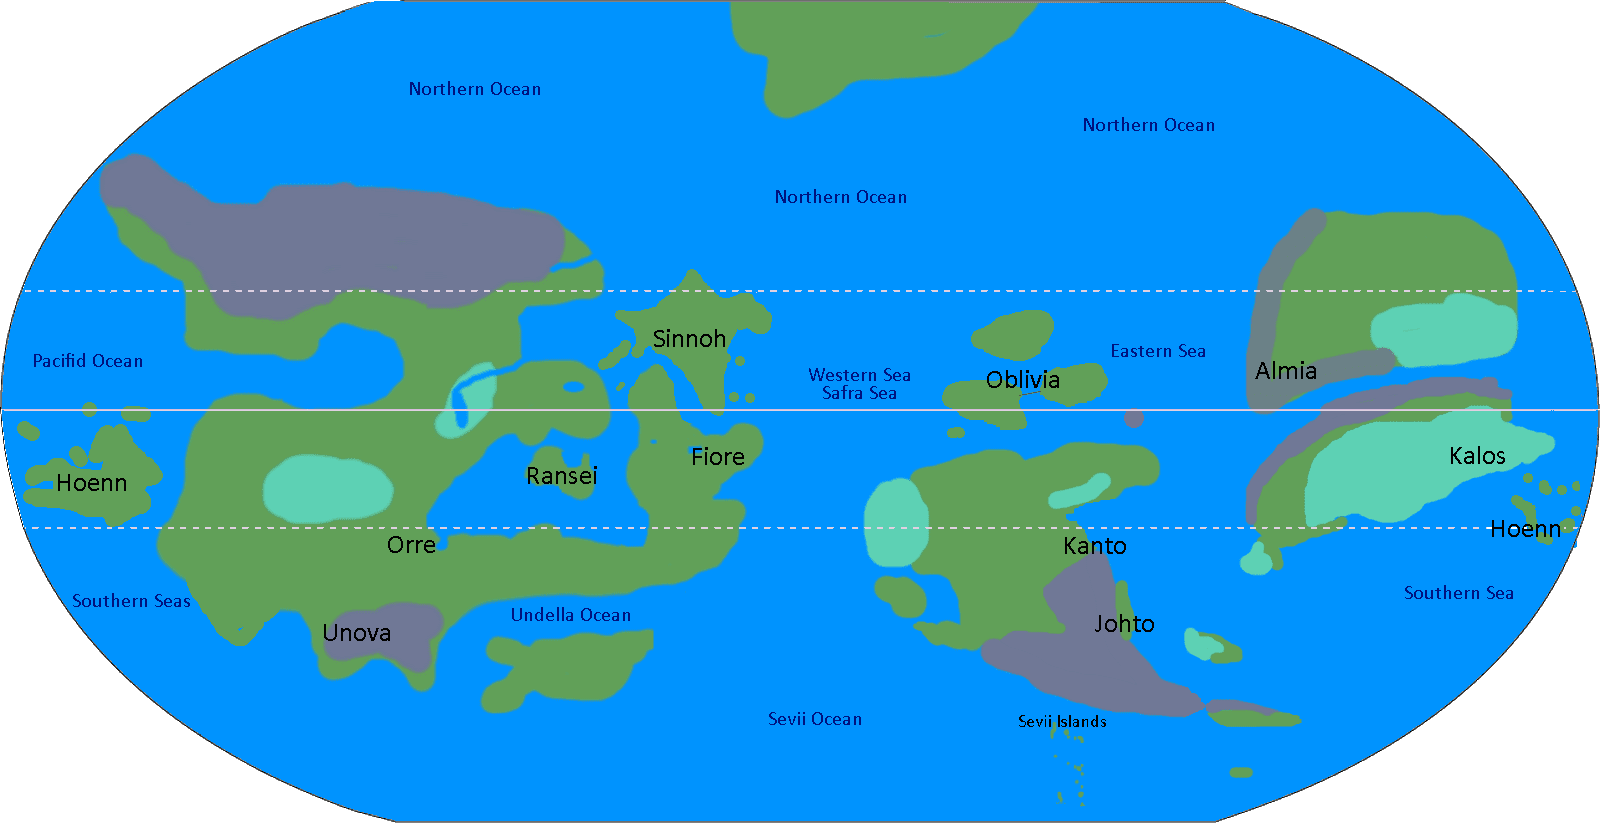 My pokemon world map v60 by jamisonhartley on deviantart all pokemon regions world map images pokemon images gumiabroncs